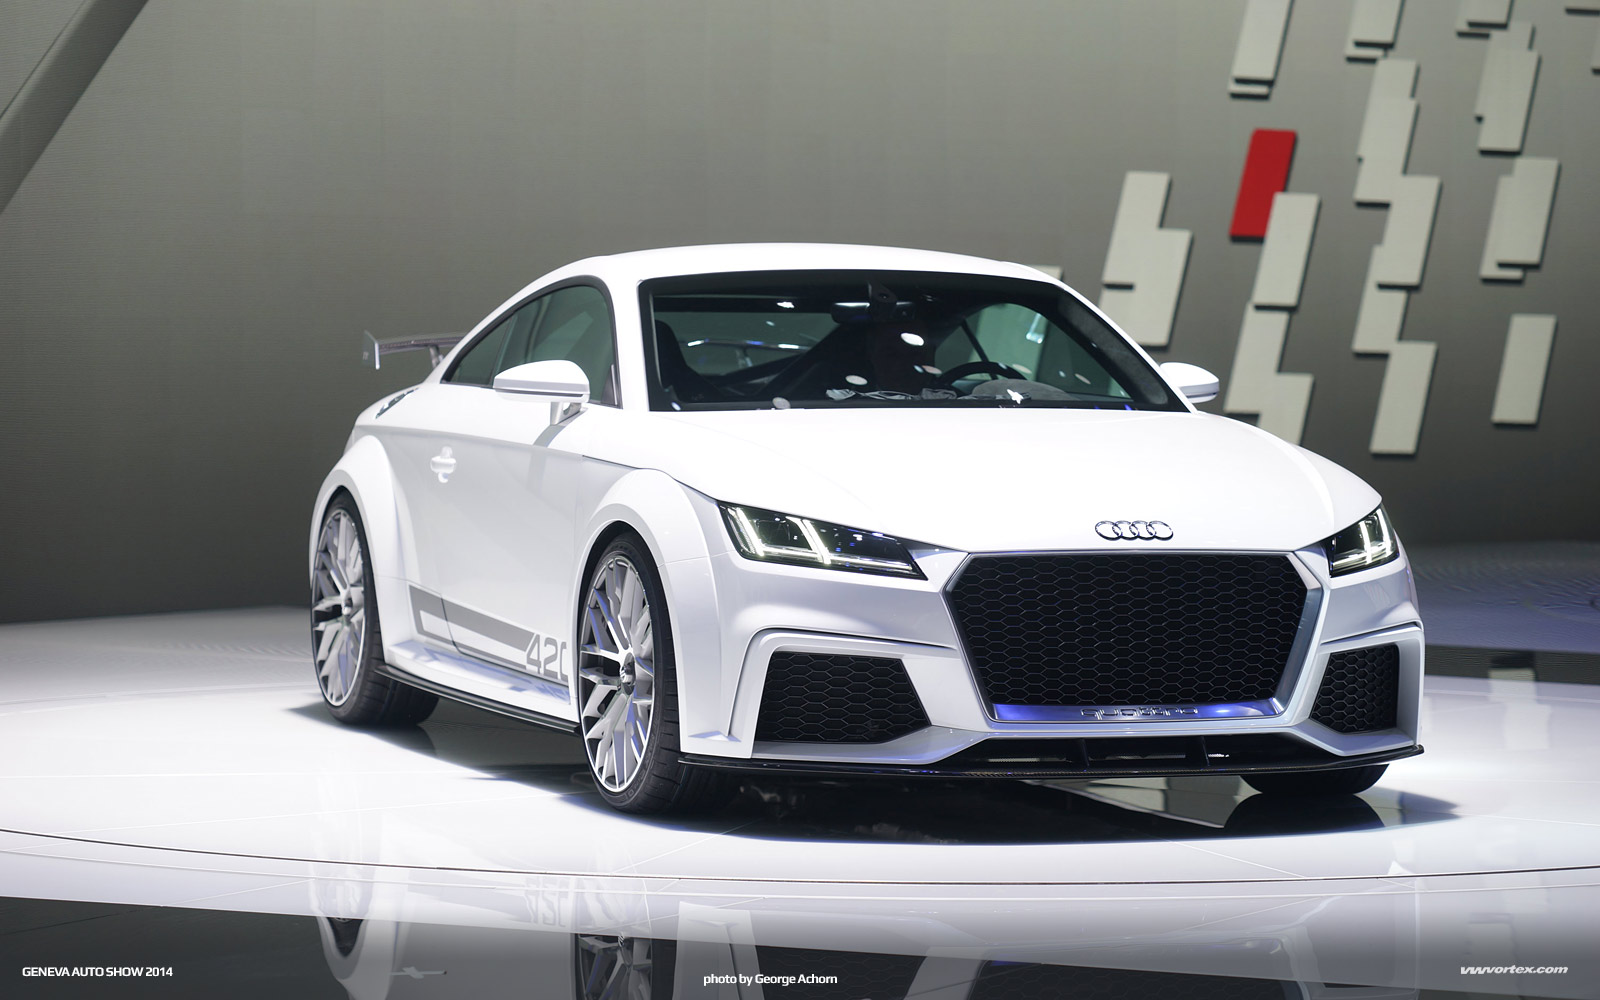 Audi R8 mk3 hans valdeig render 600x300 photo